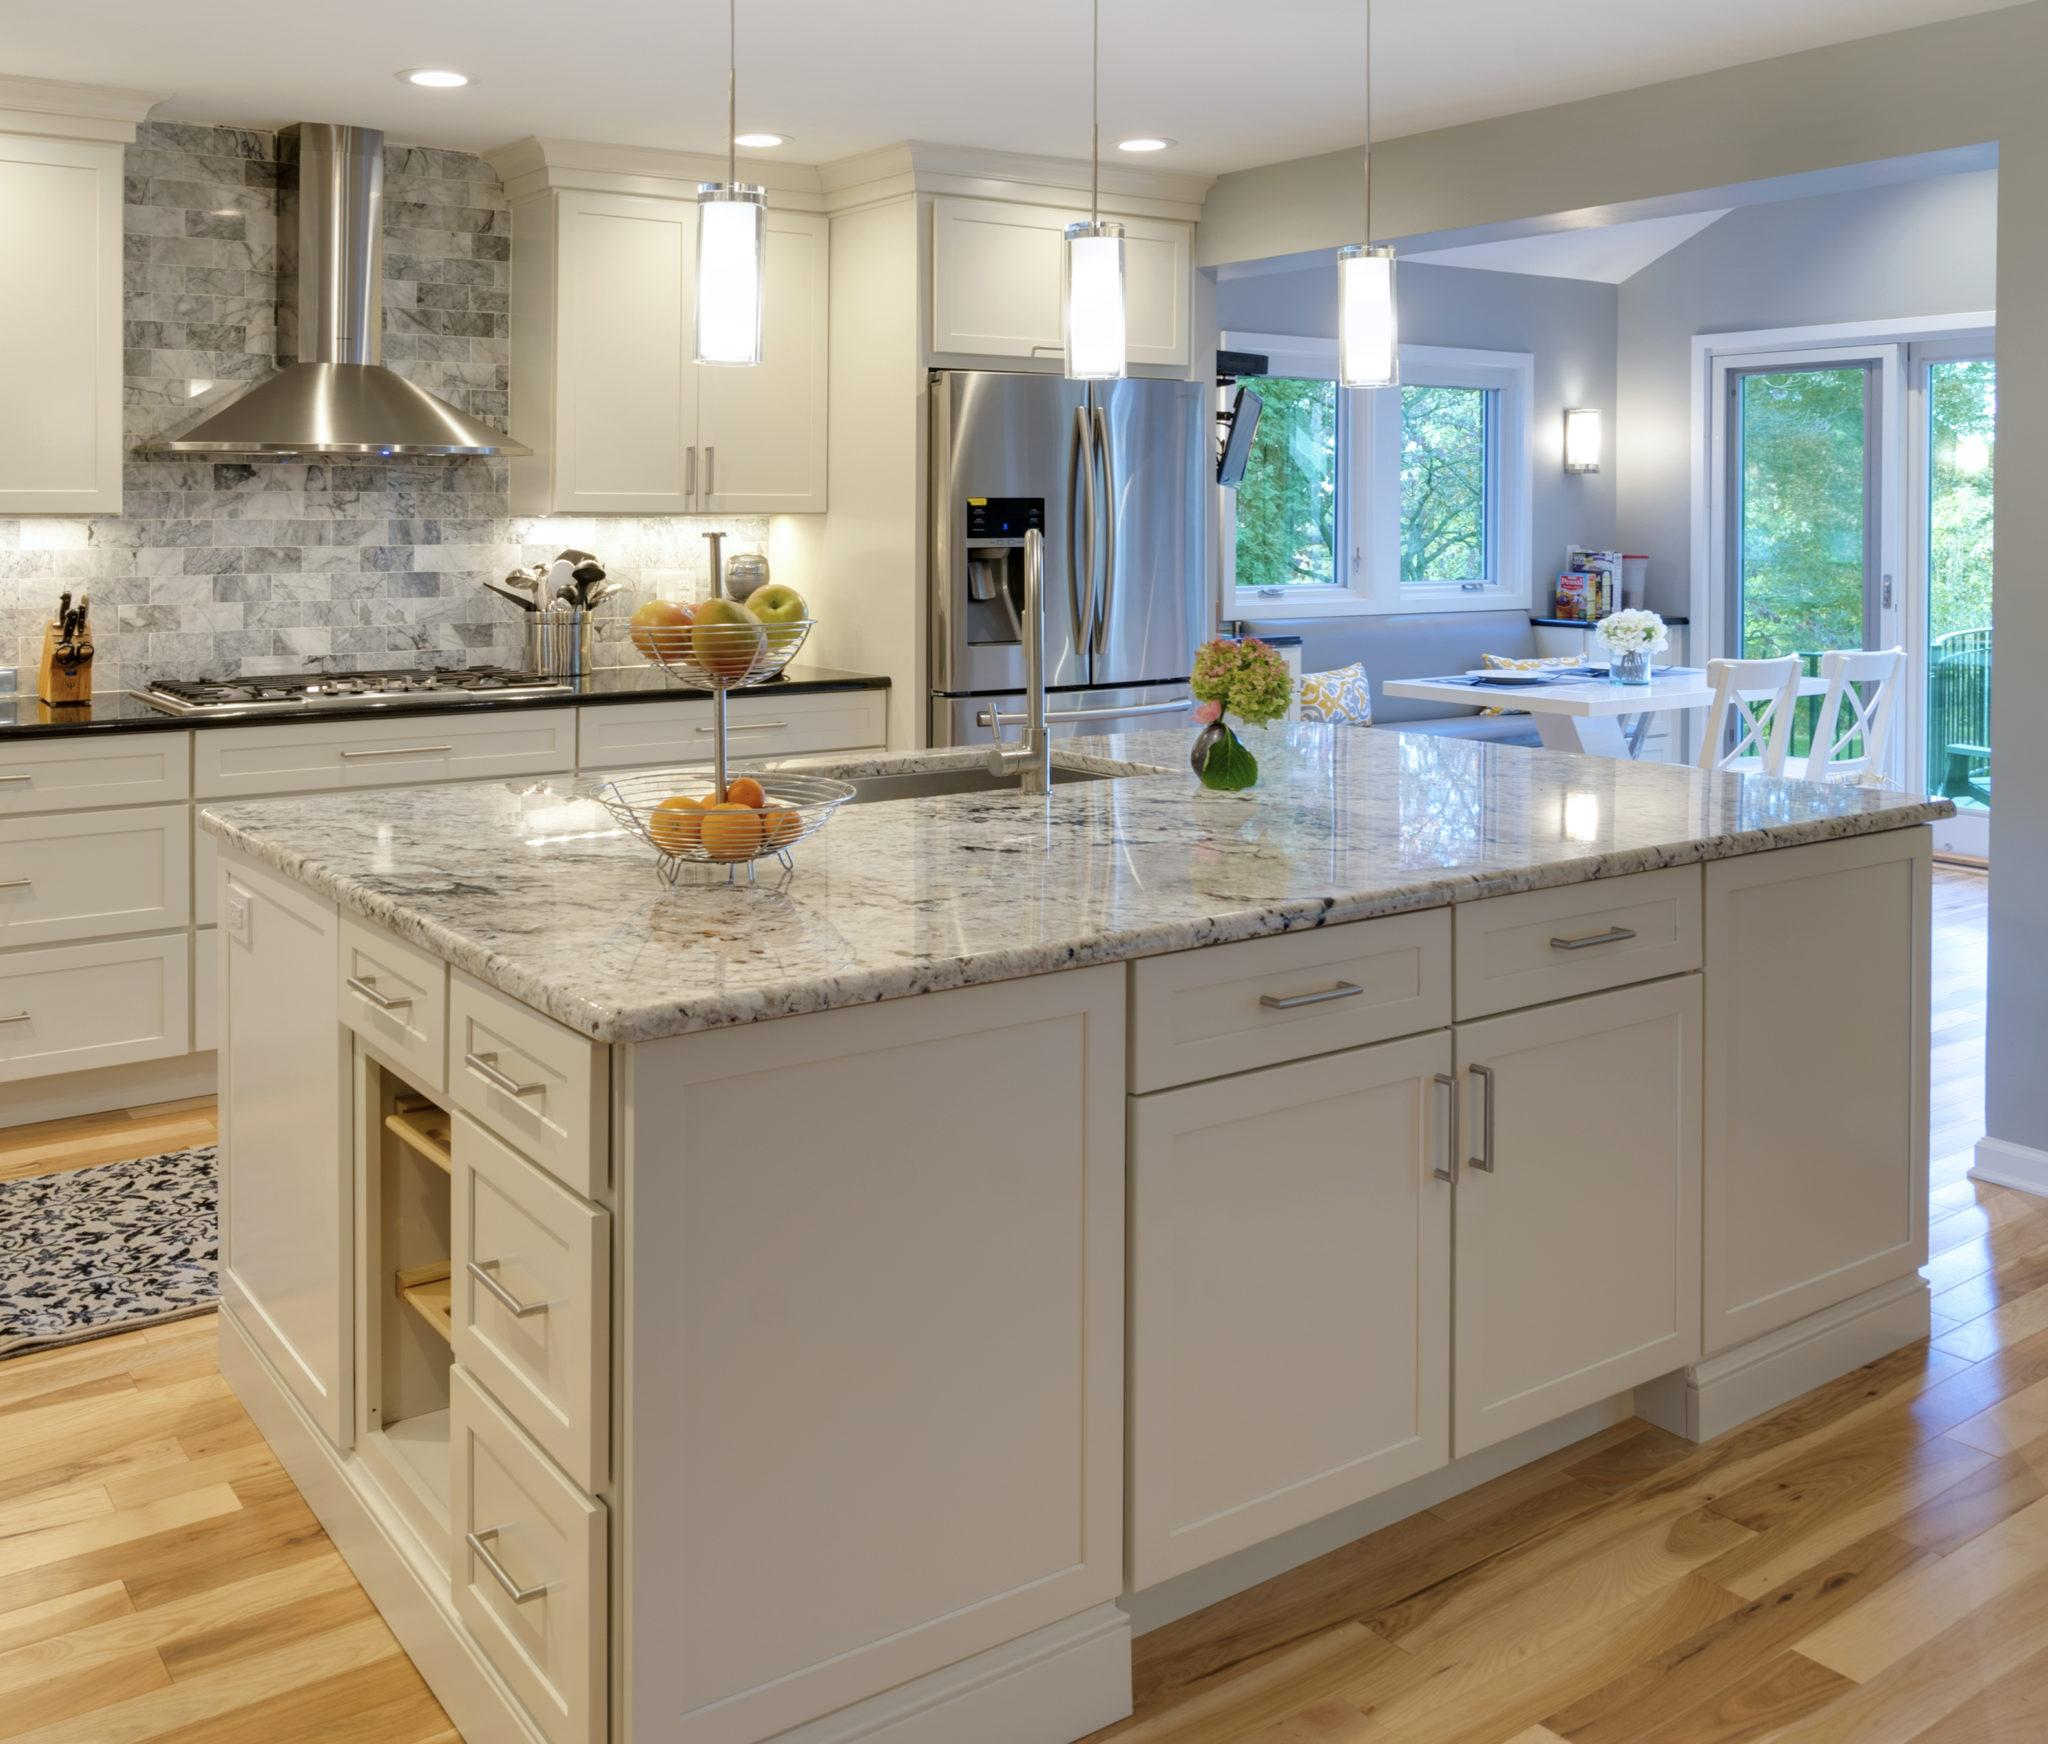 Main Line Kitchen Design – Milestones from 2017 into 2018.